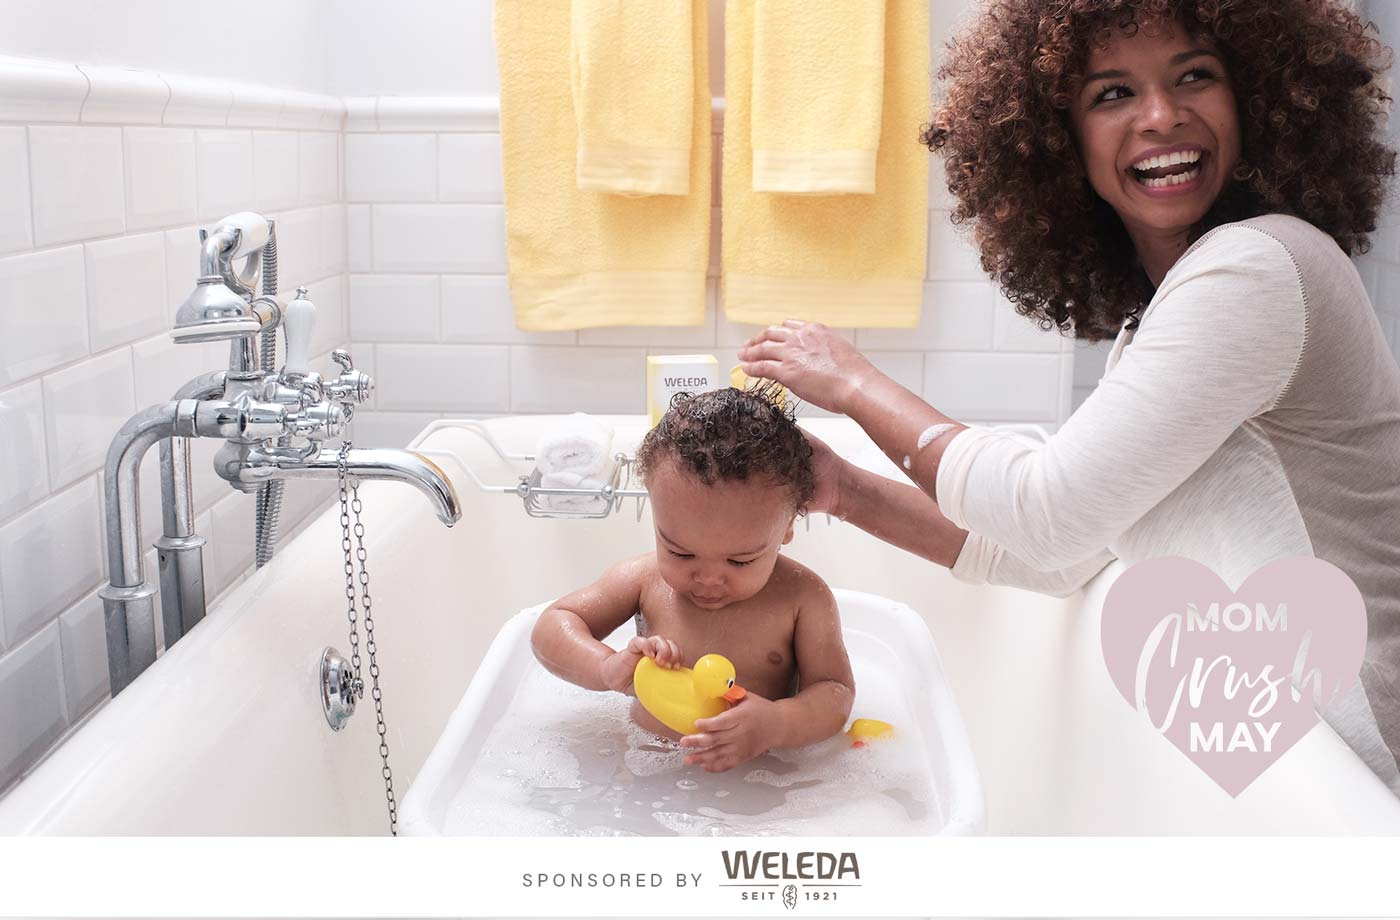 Thumbnail for The wellness-boosting perks of bath time beyond a clean and calm baby